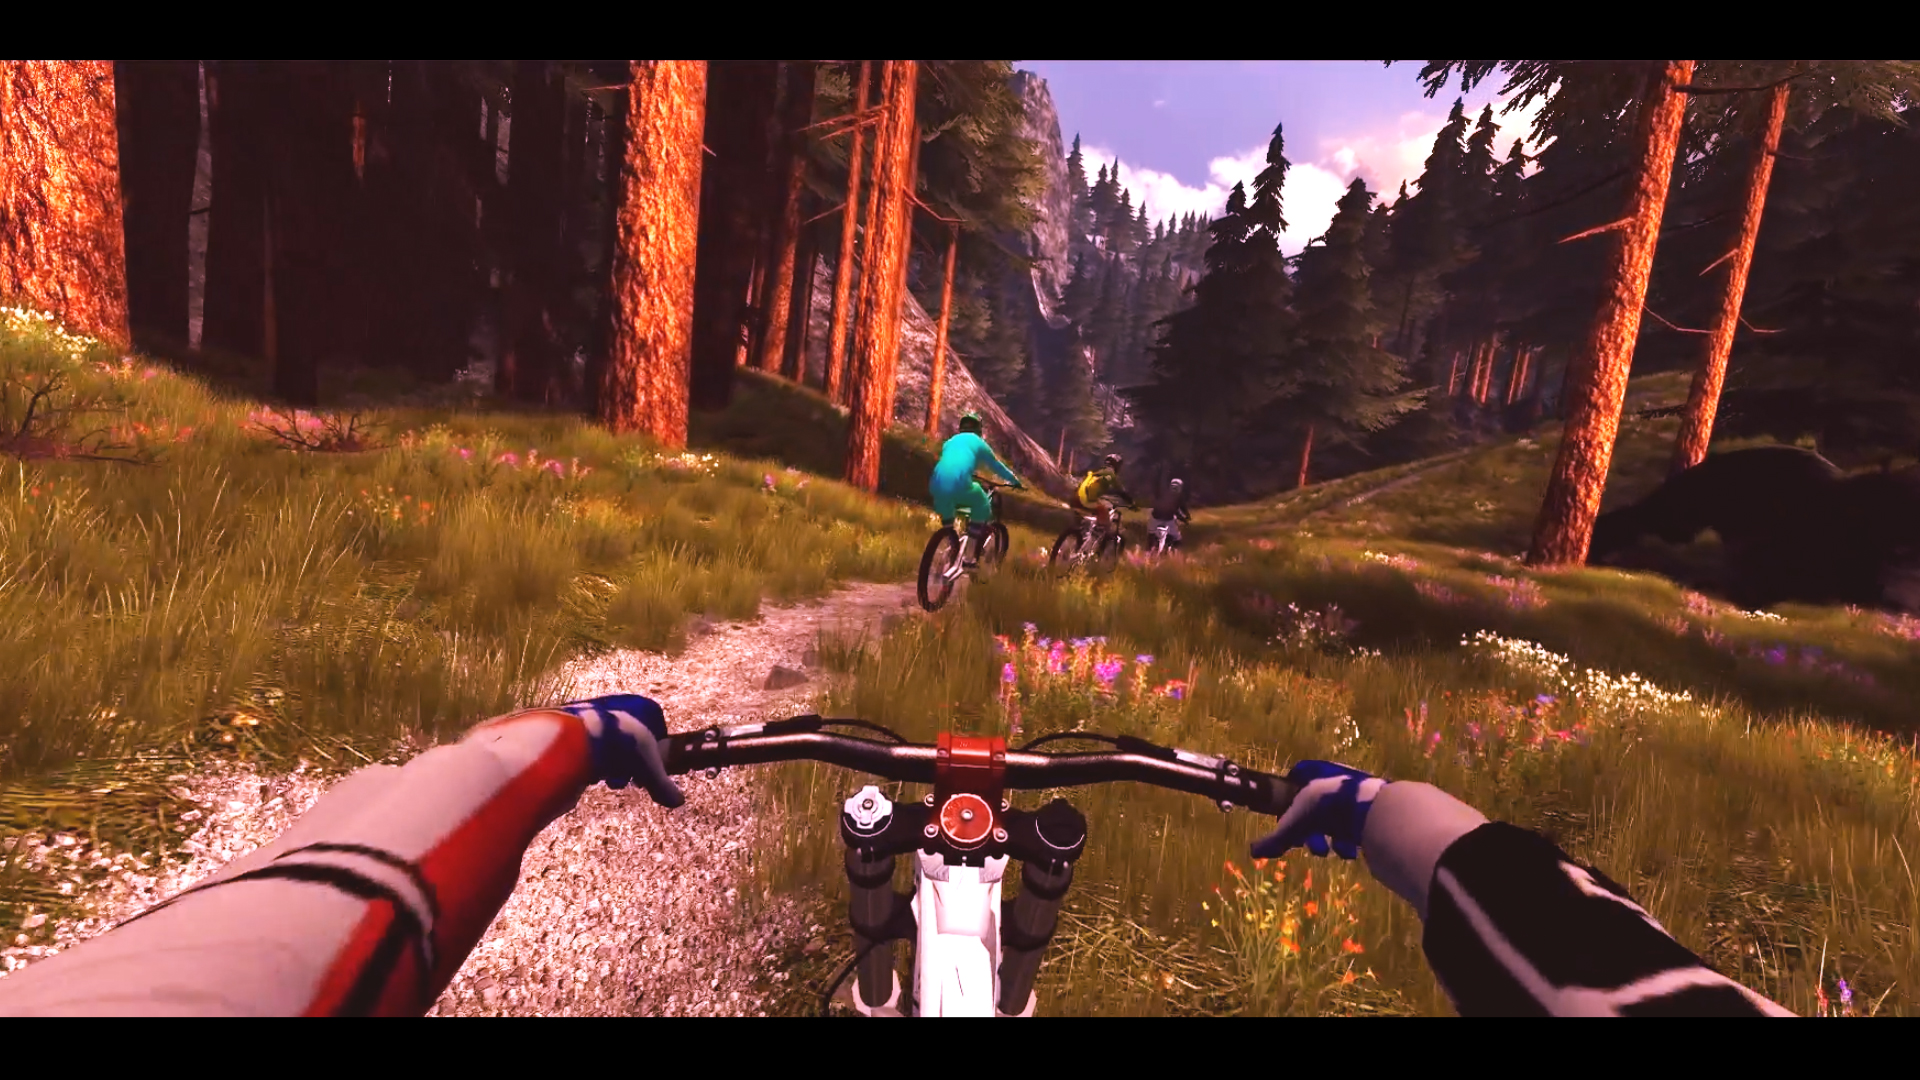 The virtual cycling world of the new ebove bike available in 2016 from activetainment.com